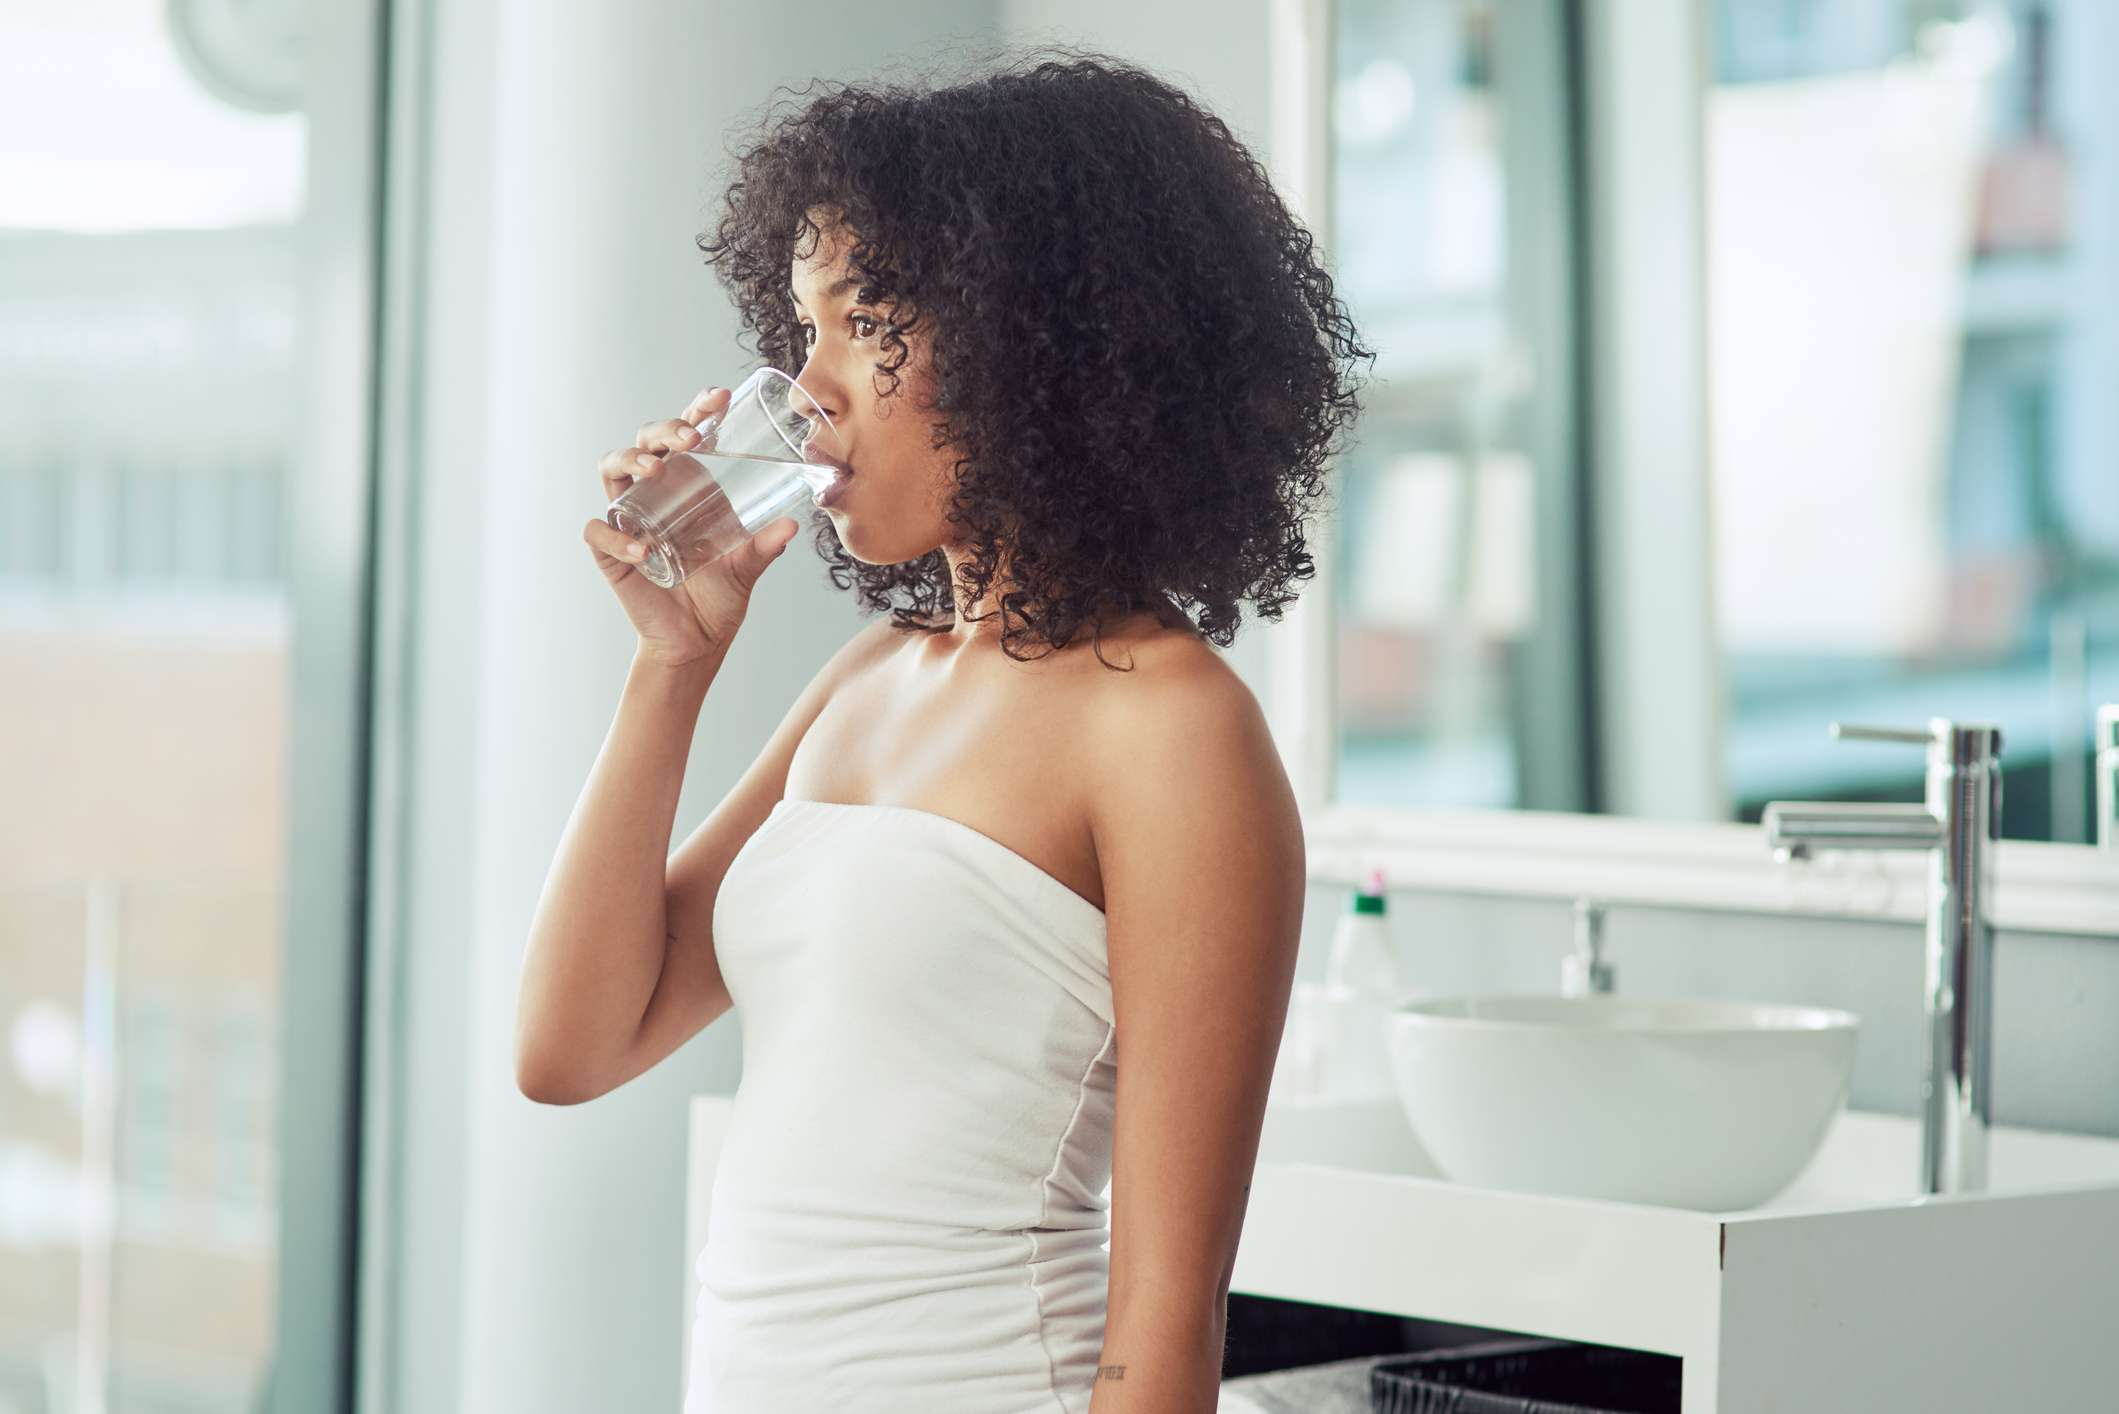 A young black woman drinks water from a glass in a white washroom.